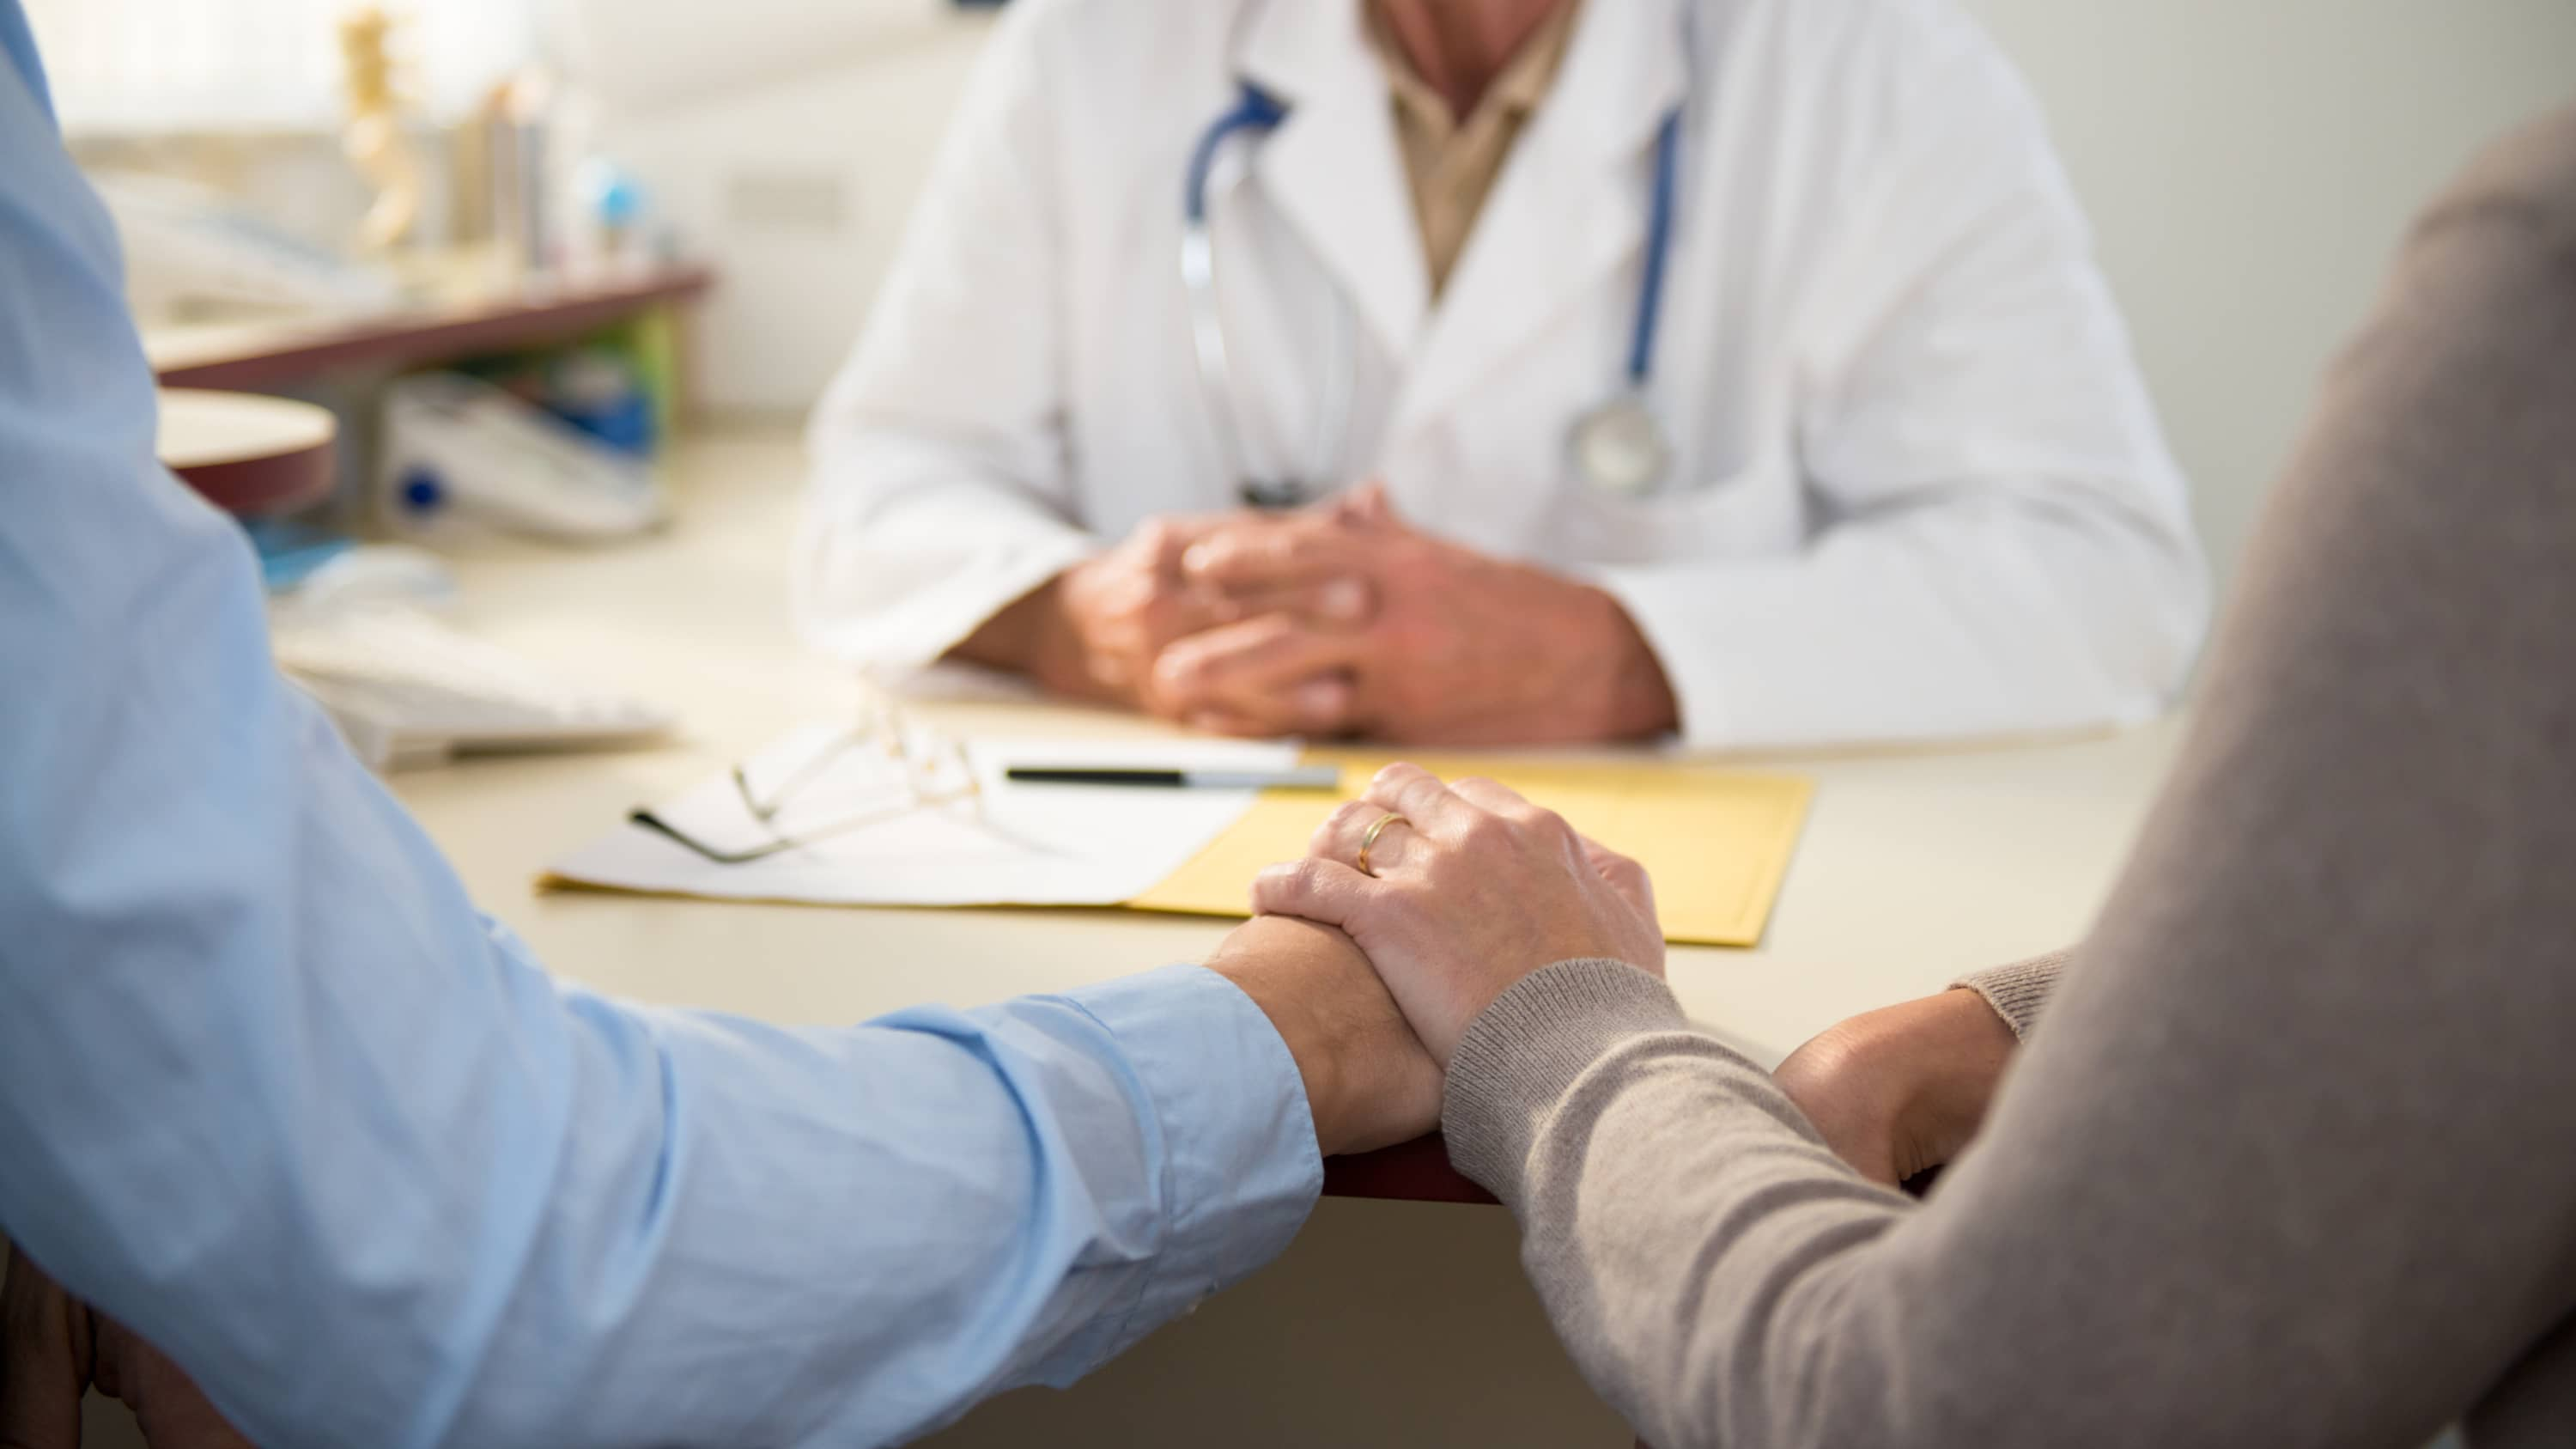 A couple holding hands talks to a doctor about imaging results.